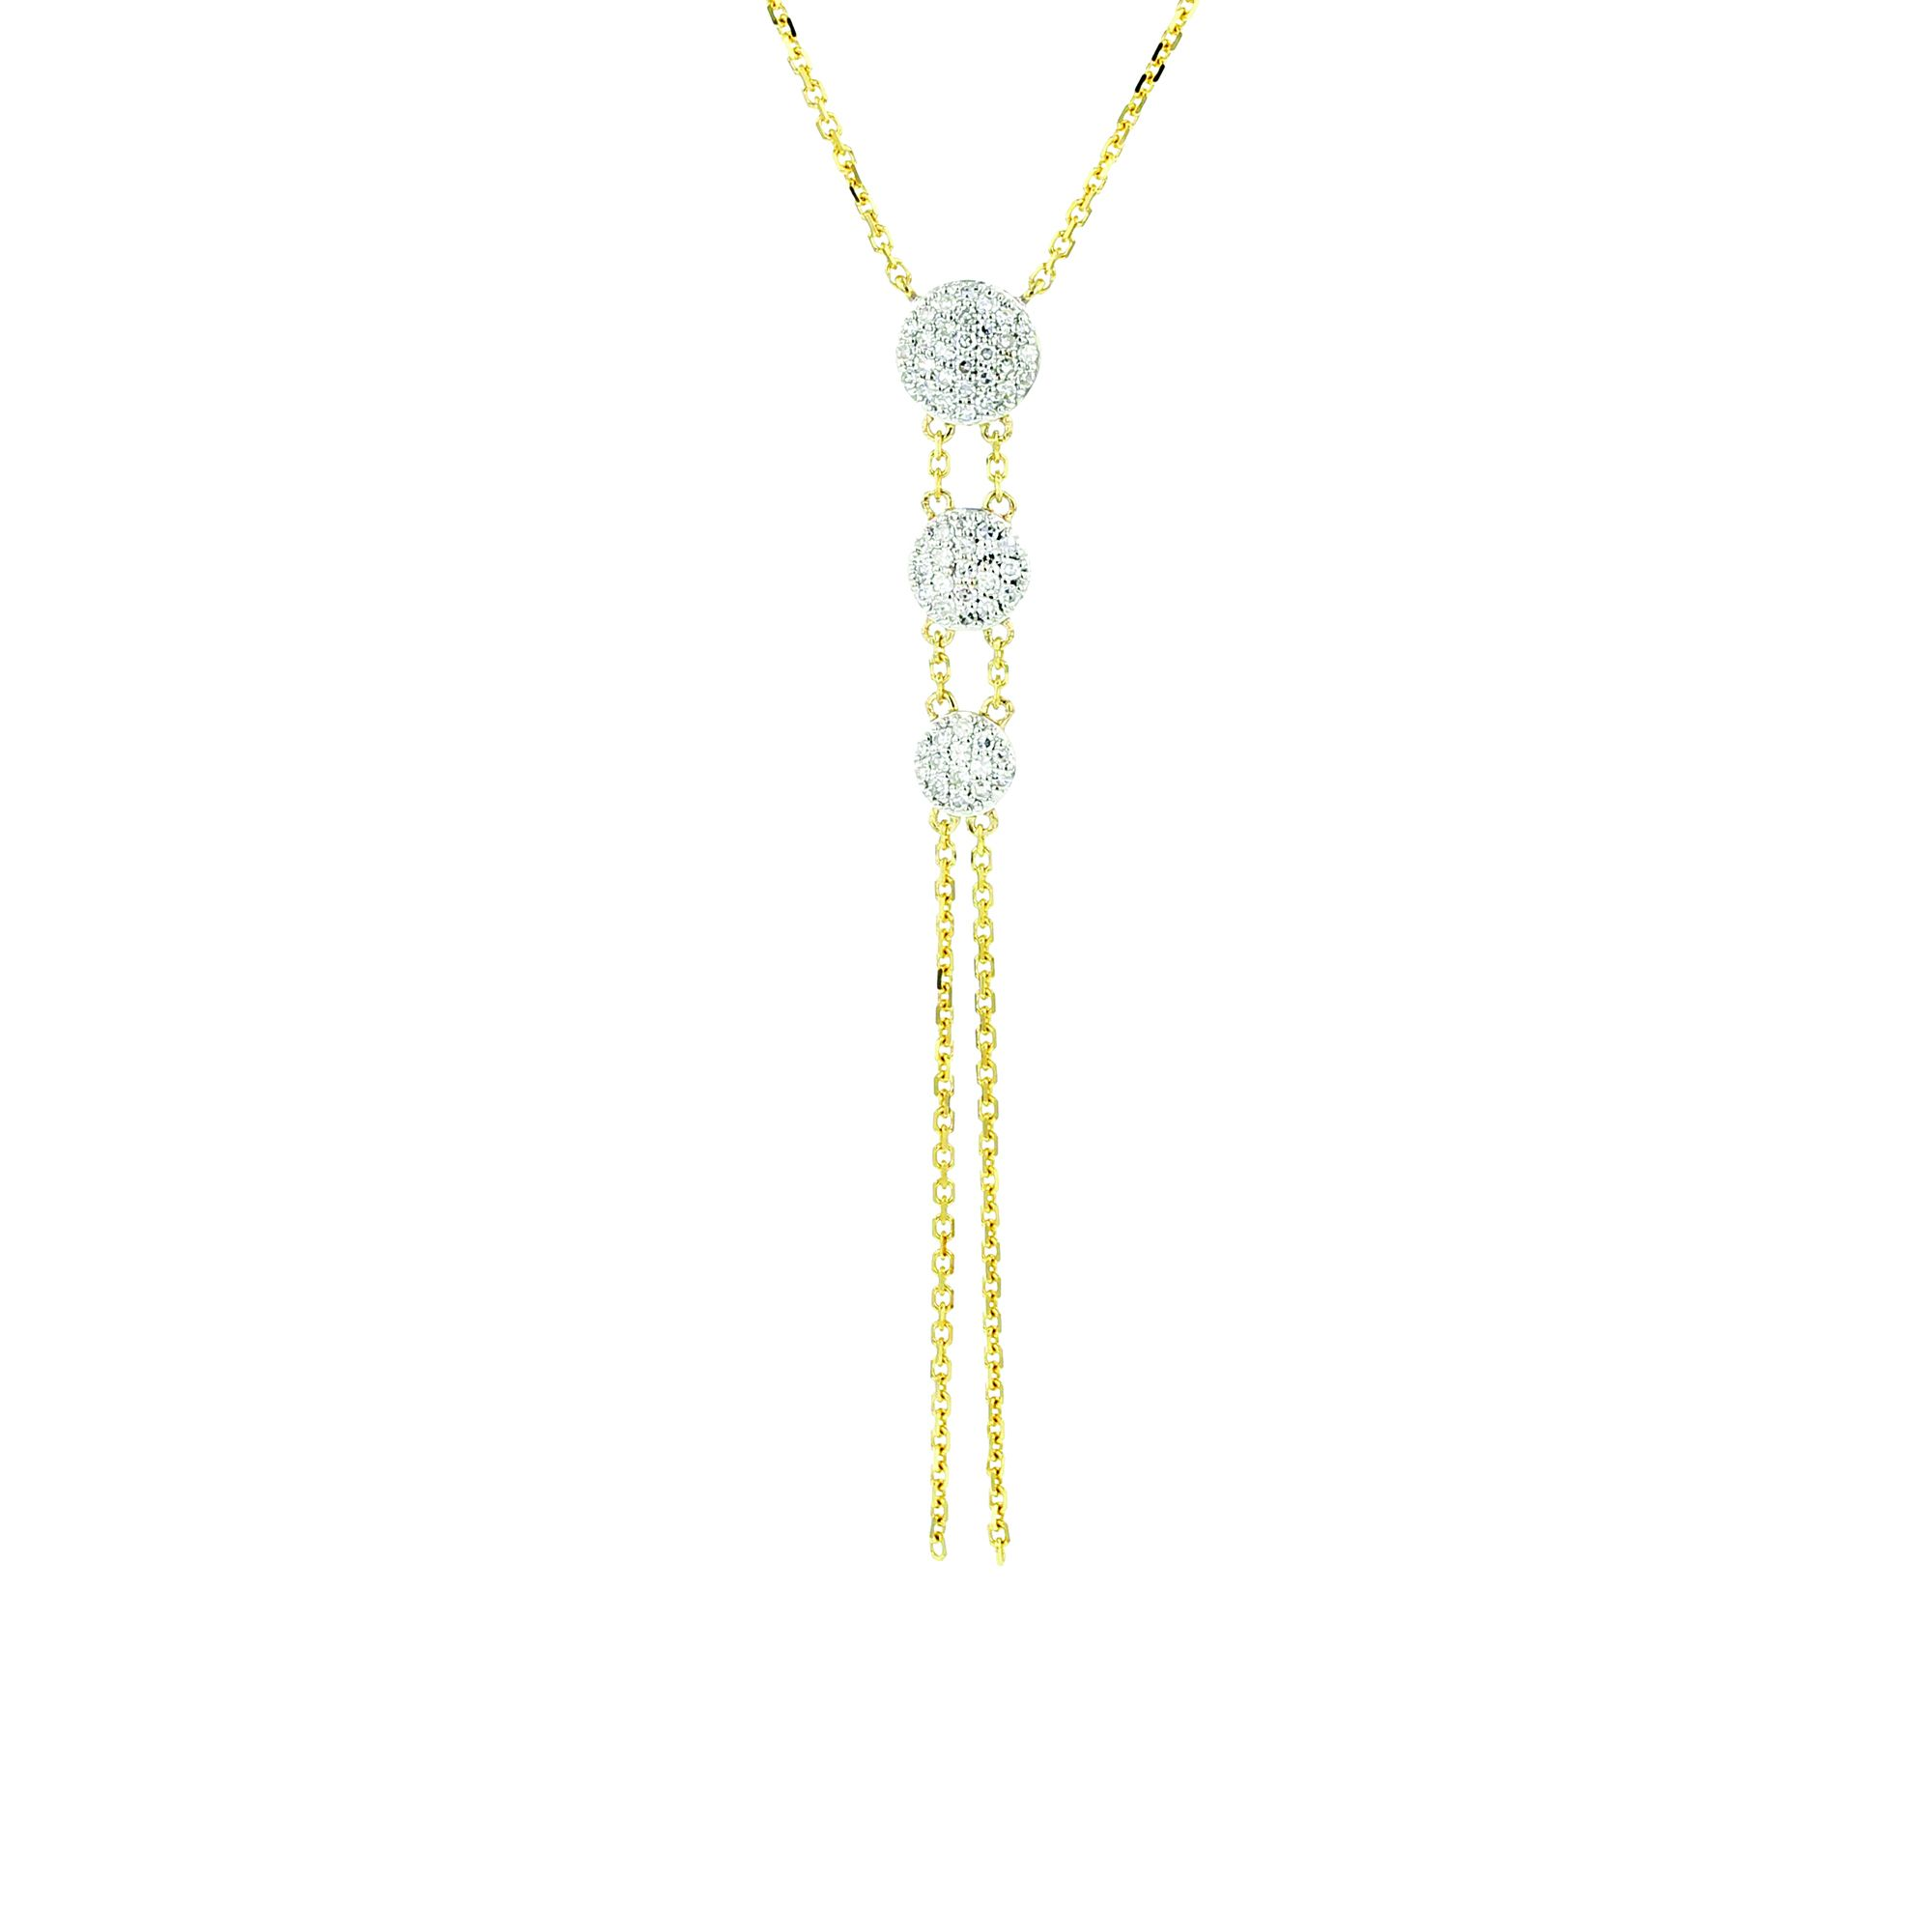 14k White Gold Triple Infinity Necklace with Diamonds